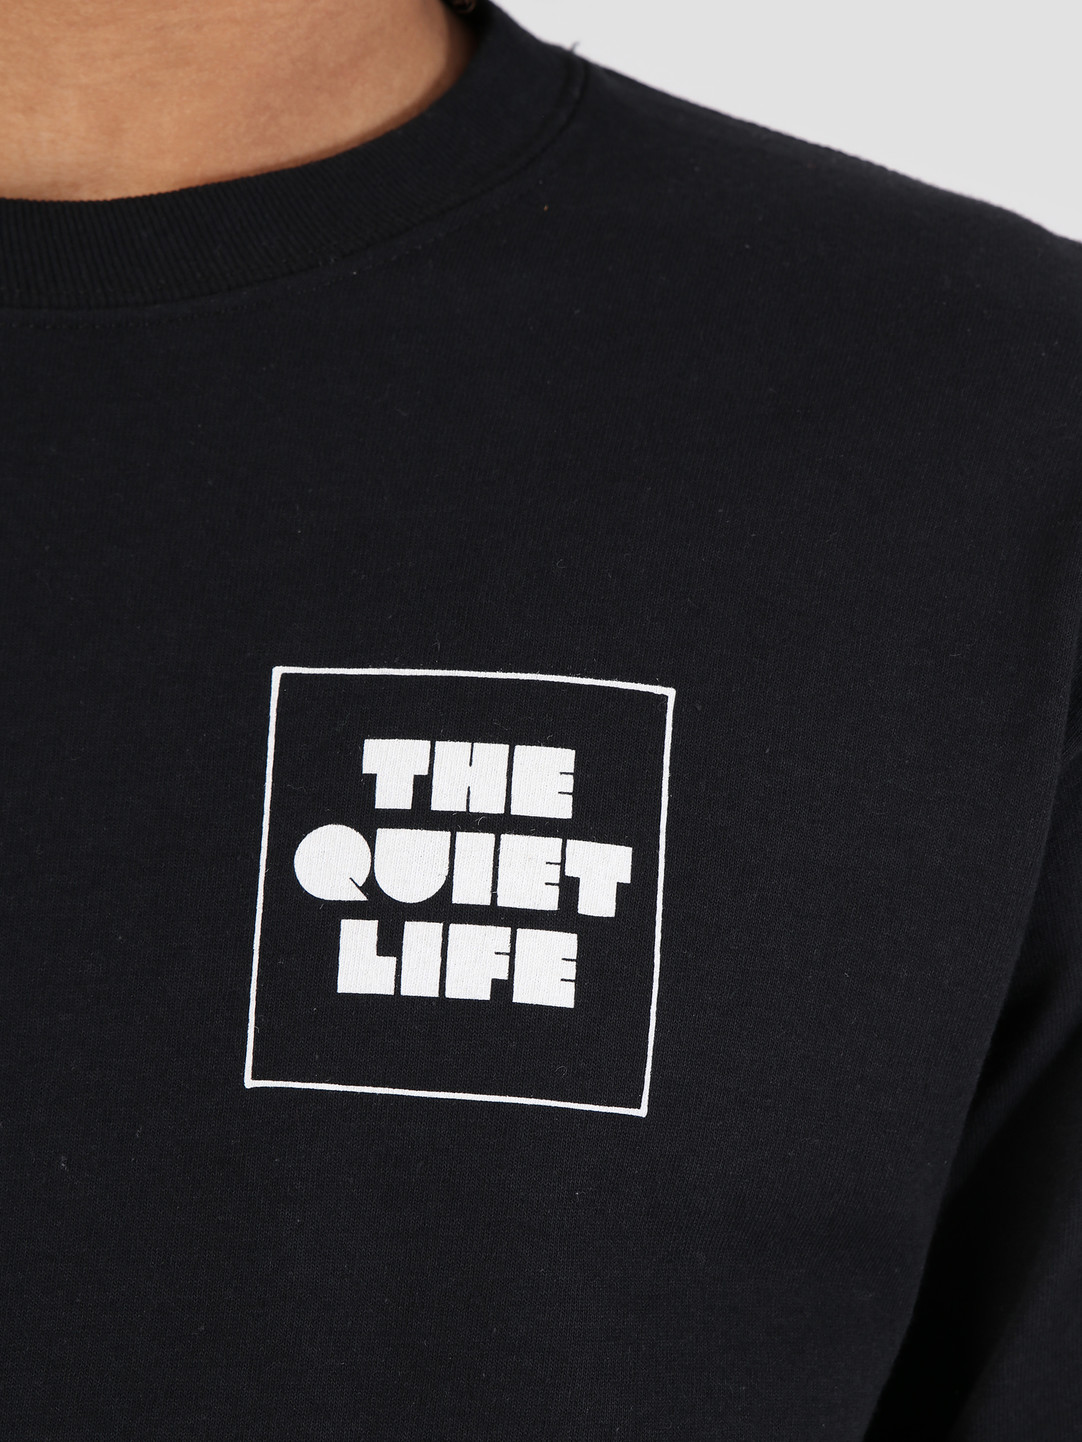 The Quiet Life The Quiet Life Blink Long Sleeve Black 19SPD1-1150-BLK